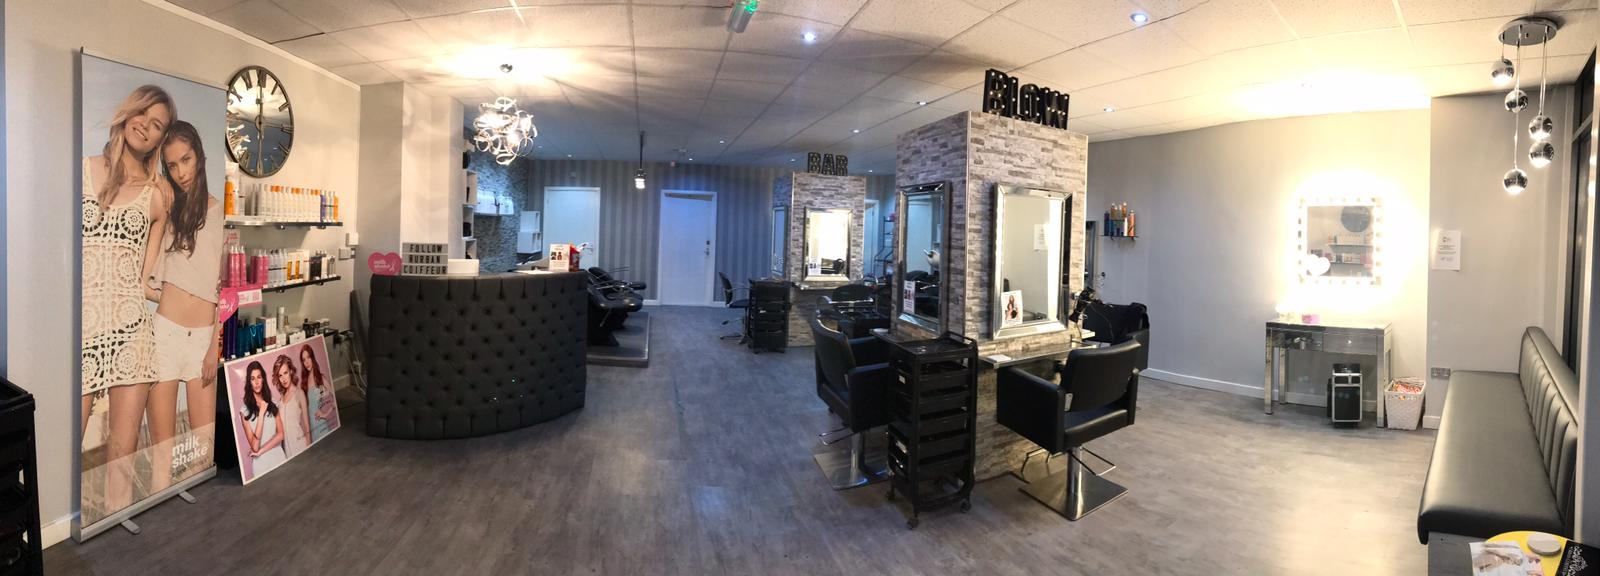 urban coiffeur hair salon in wolverhampton